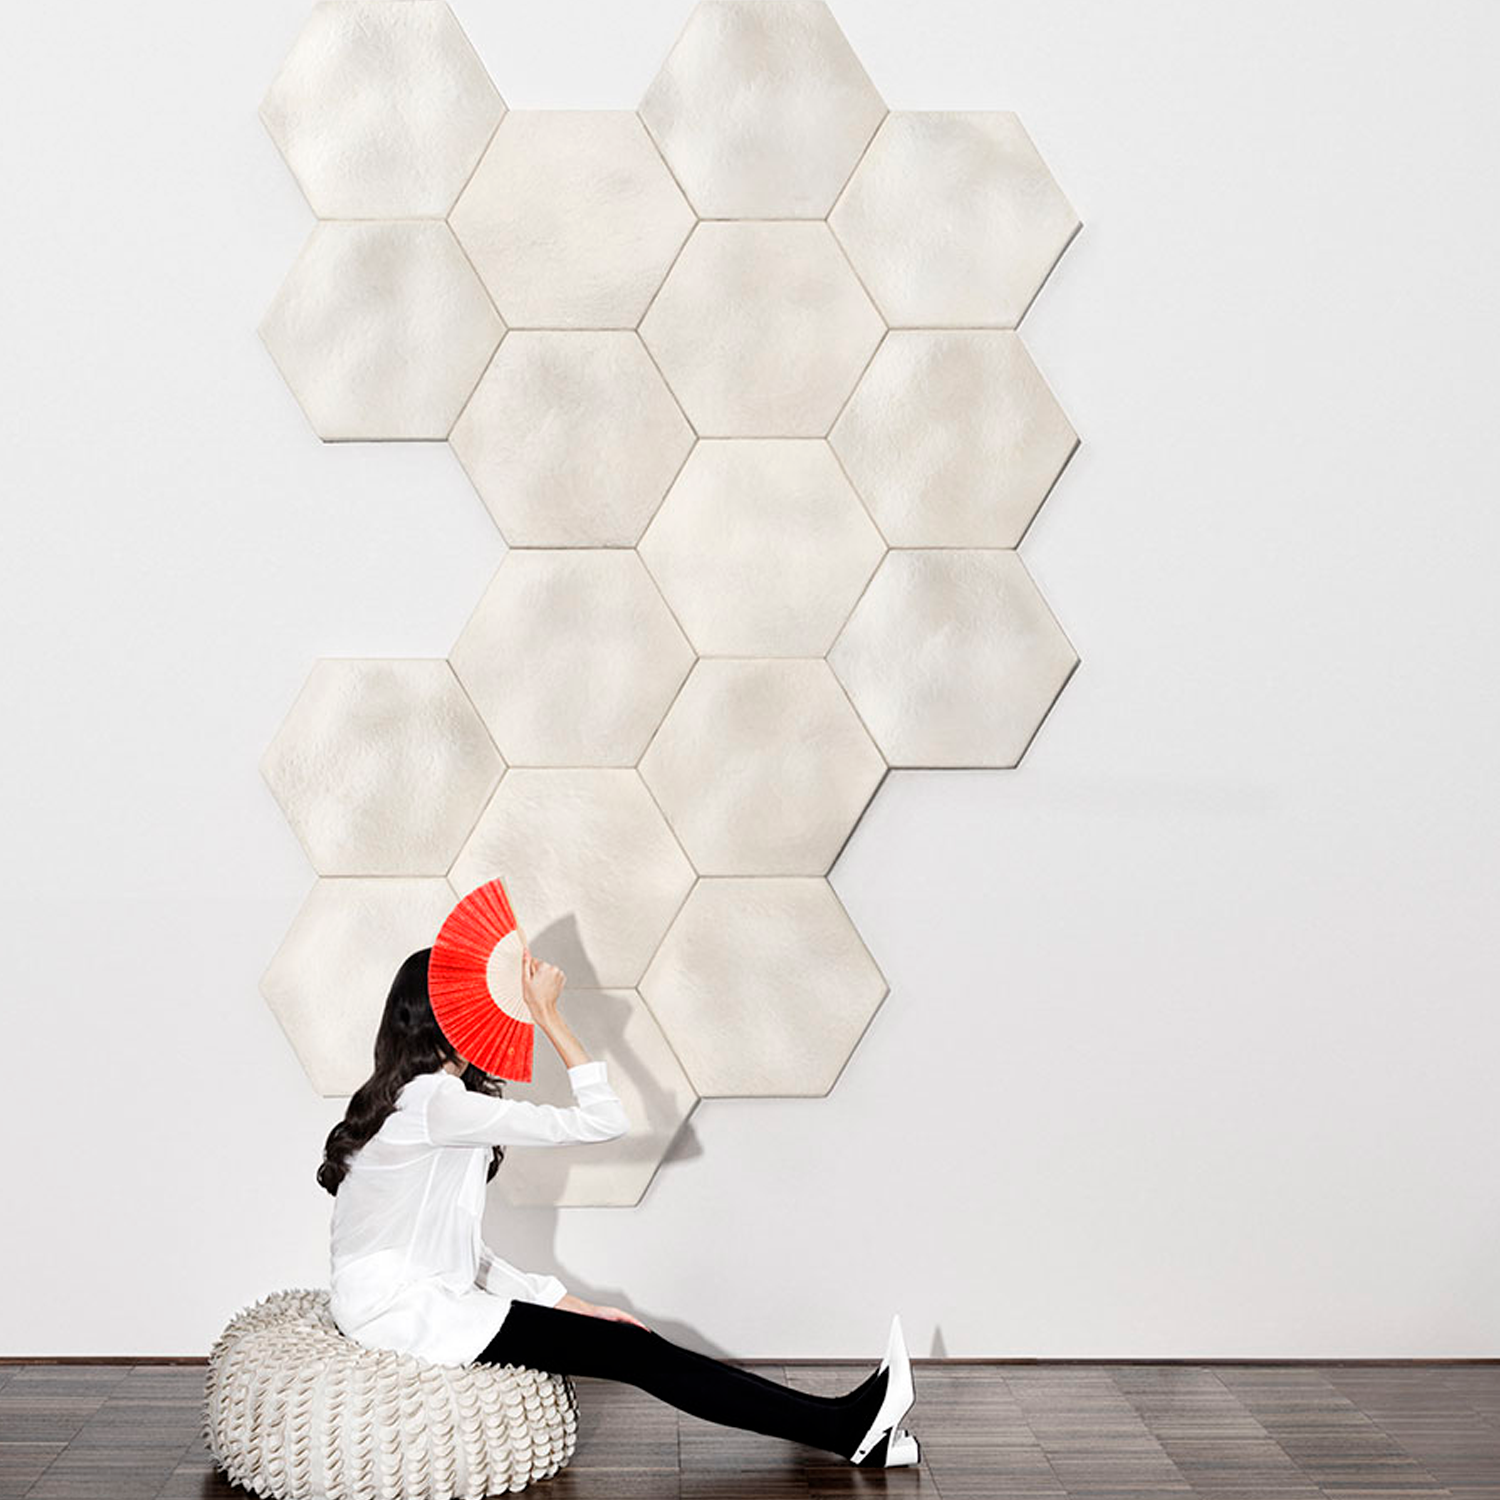 Wave Acoustic Panels - Acoustic collection marks an unprecedented revolution for interior design comfort.  Acoustic modules are made from soft, foam like mycelium materials grown on upcycled textile residues. Thanks to the unique technology, Acoustic panels represent today the most sustainable solution dedicated to acoustic comfort. They are characterised by a unique velvety finishing and different 3D shape, to maximise sound absorption as well as aesthetic comfort.   WAVE: Soft and ethereal wall panels that evoke the sensation of wandering through hills covered in fresh snow. The visual softness and sound dampening properties of Wave enhance comfort, resting the mind on both visual and acoustic sensorial levels.  The WAVE model is available in Hexagon shape allowing for different typologies of compositions and arrangements.  Non-GMO, non-allergenic fungal strains, which do not release any spores throughout the whole production process. The materials have been tested for allergenic and VOC Emissions.  Available in the natural white version as well as in a range of colours, please refer to colour sheet attached below. | Matter of Stuff